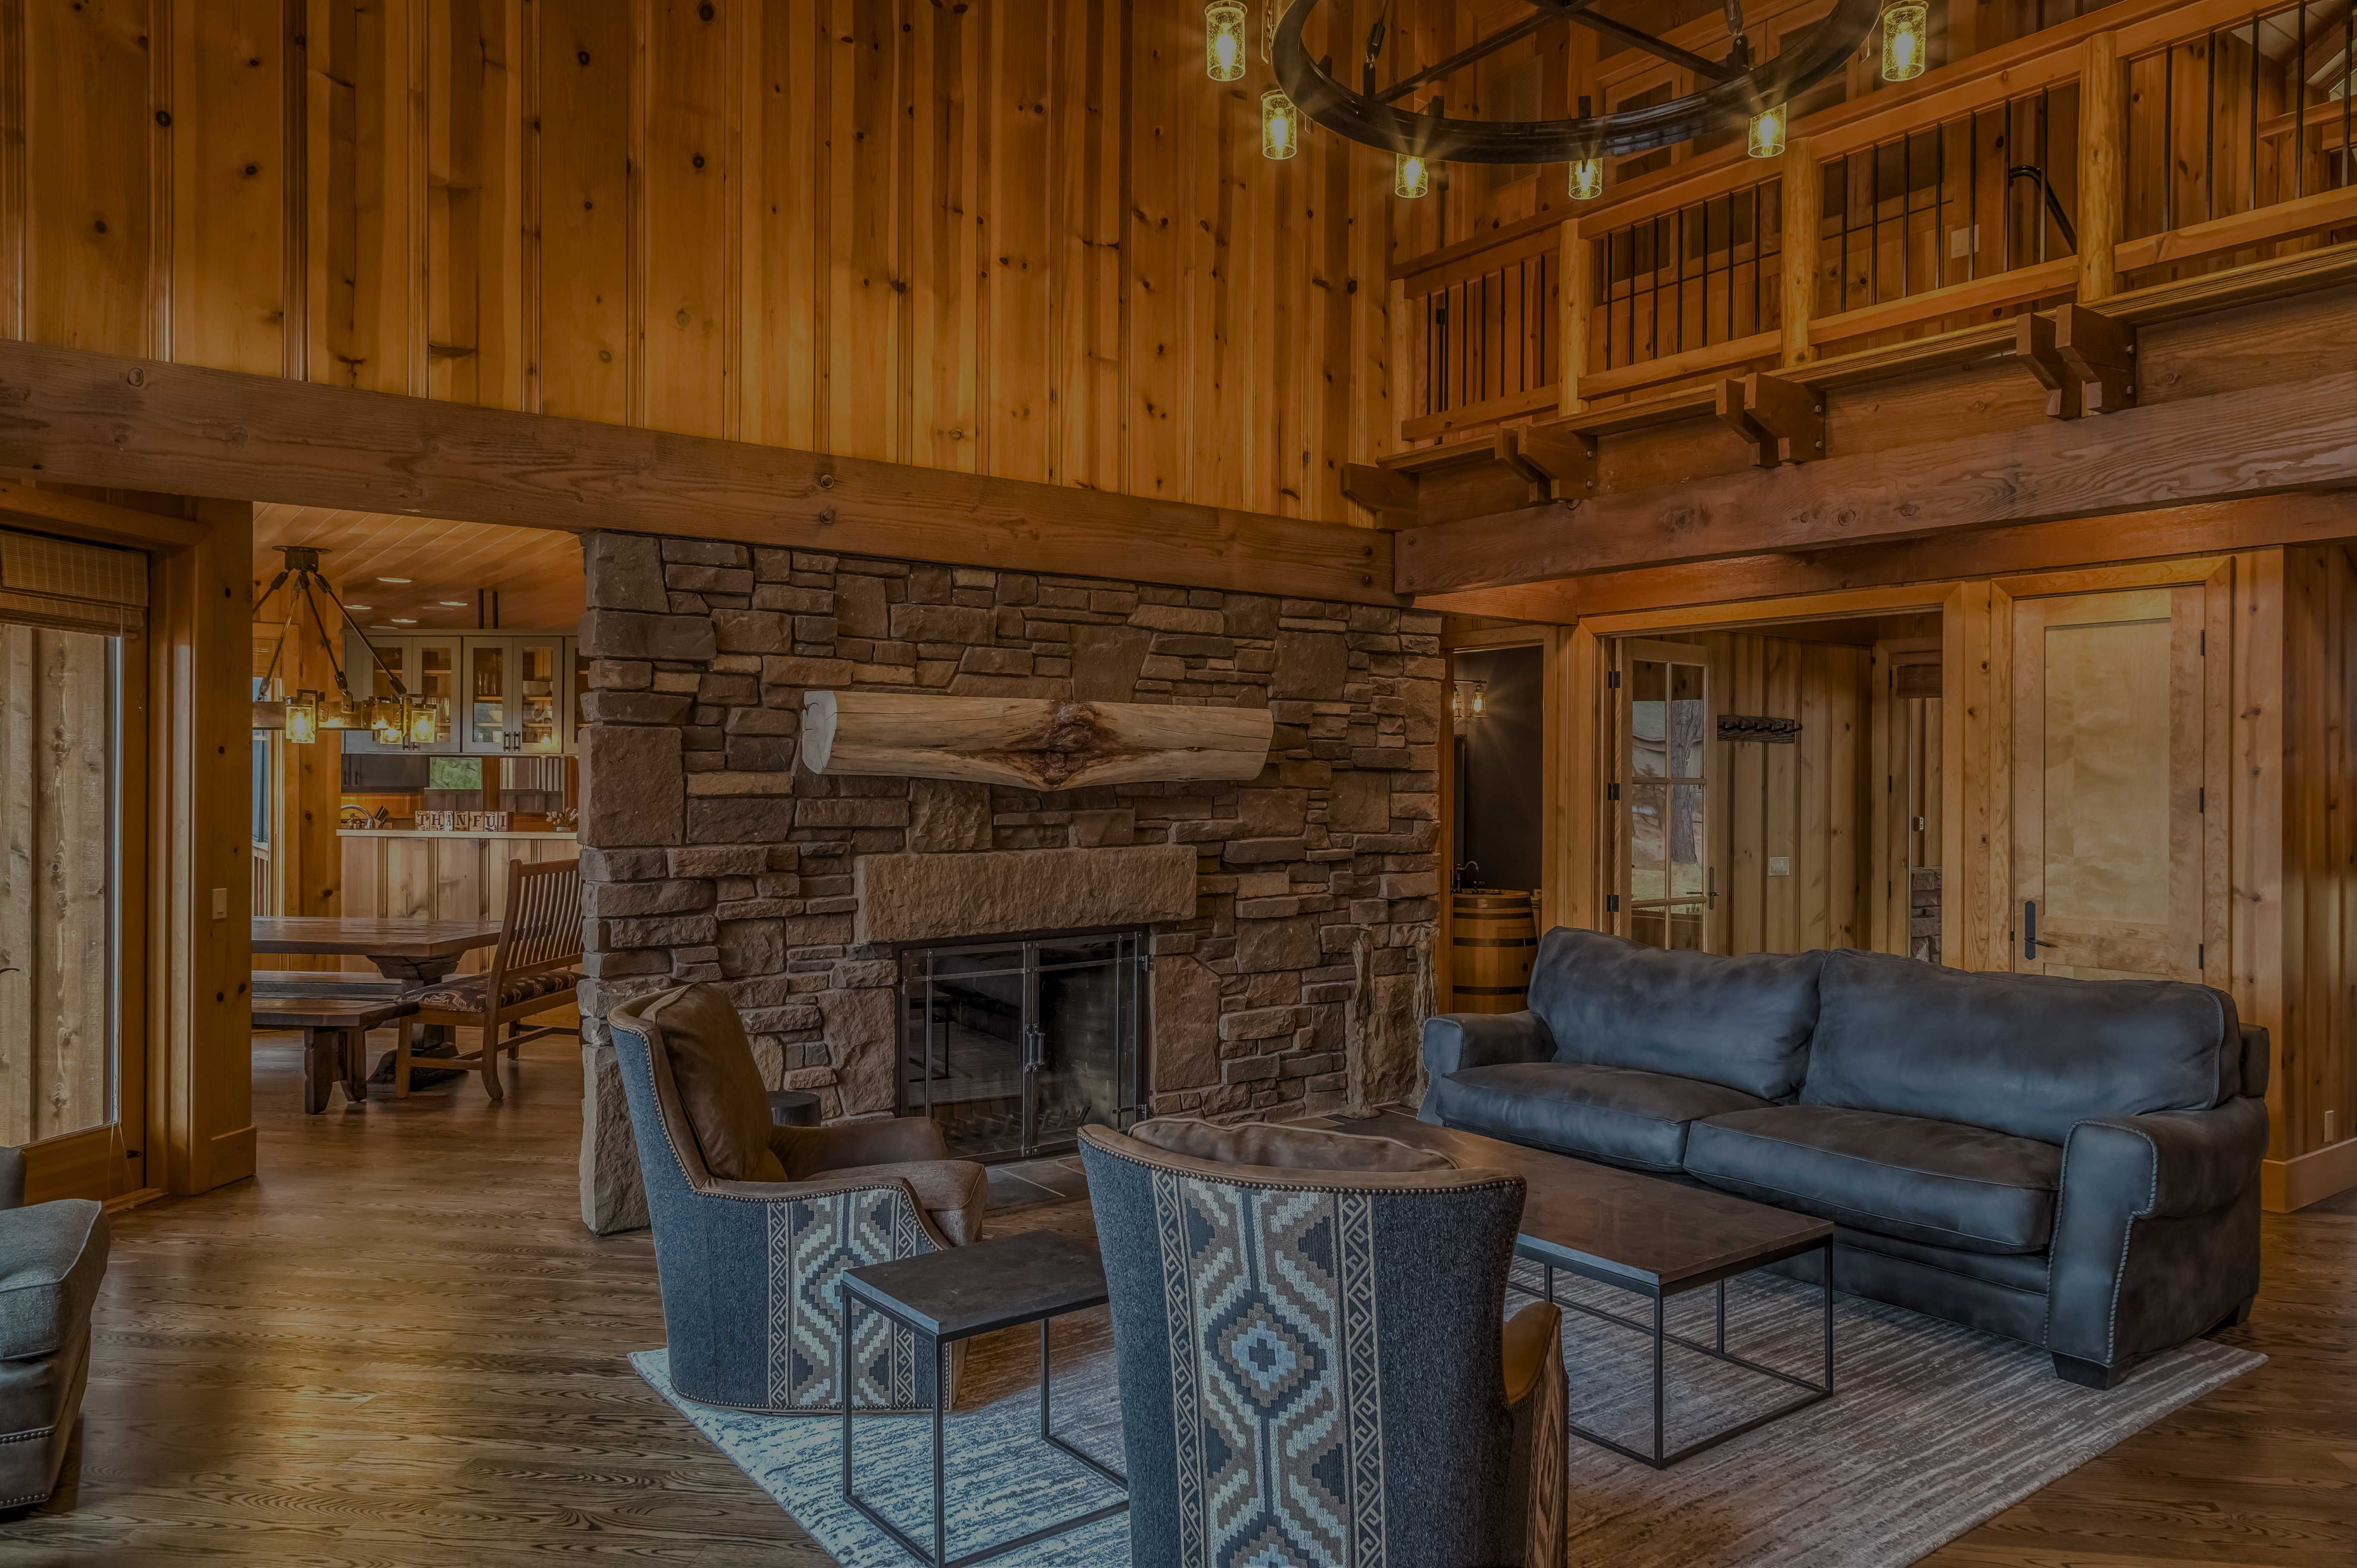 wooden interior of residential home with stone fireplace